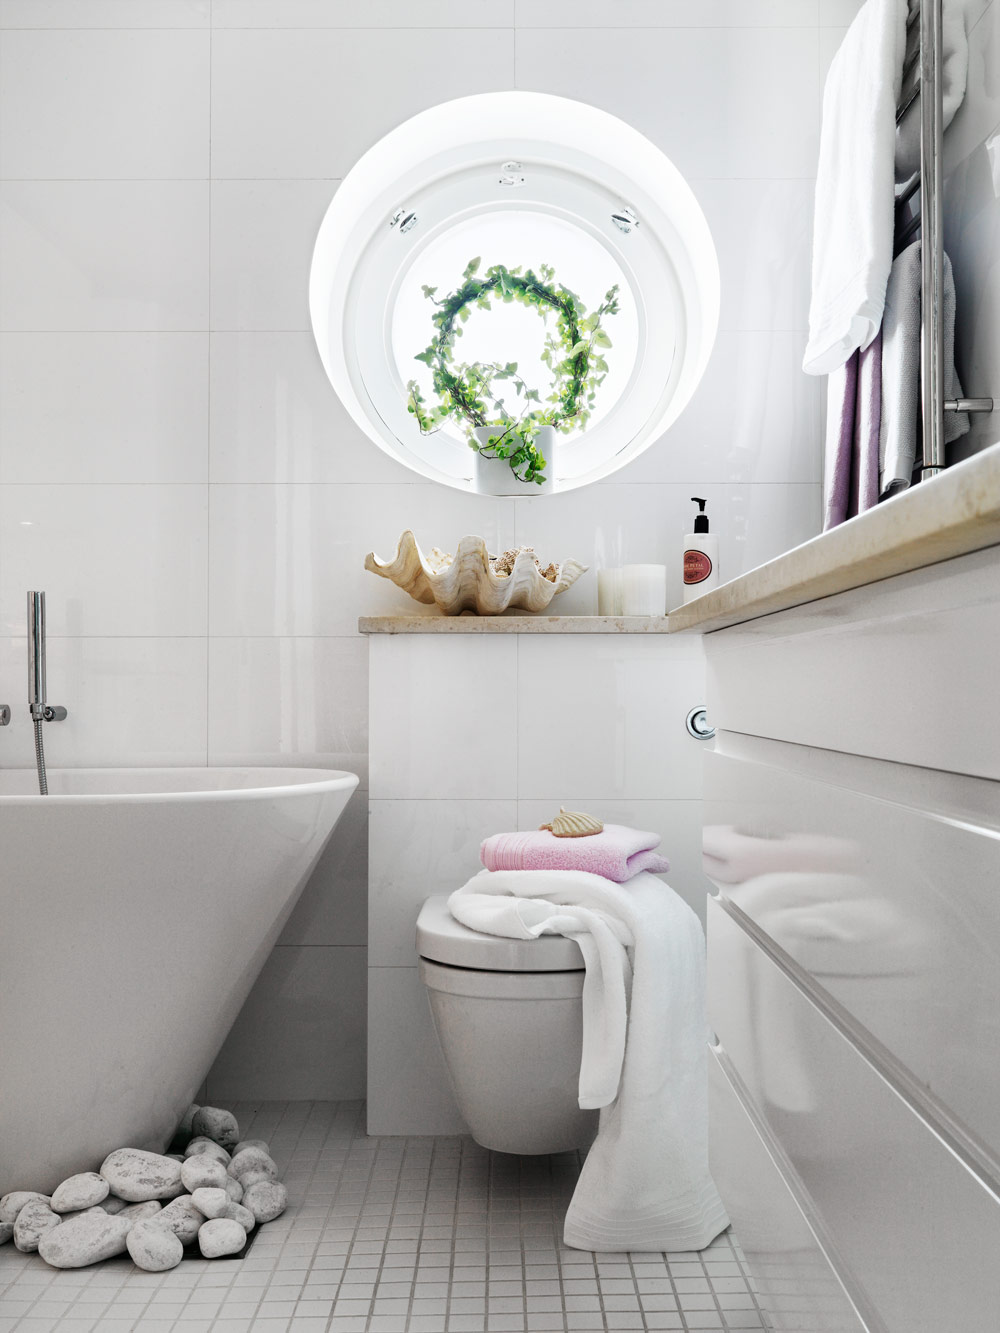 Stylish small bathroom with an unusual decor digsdigs for Bathroom decor